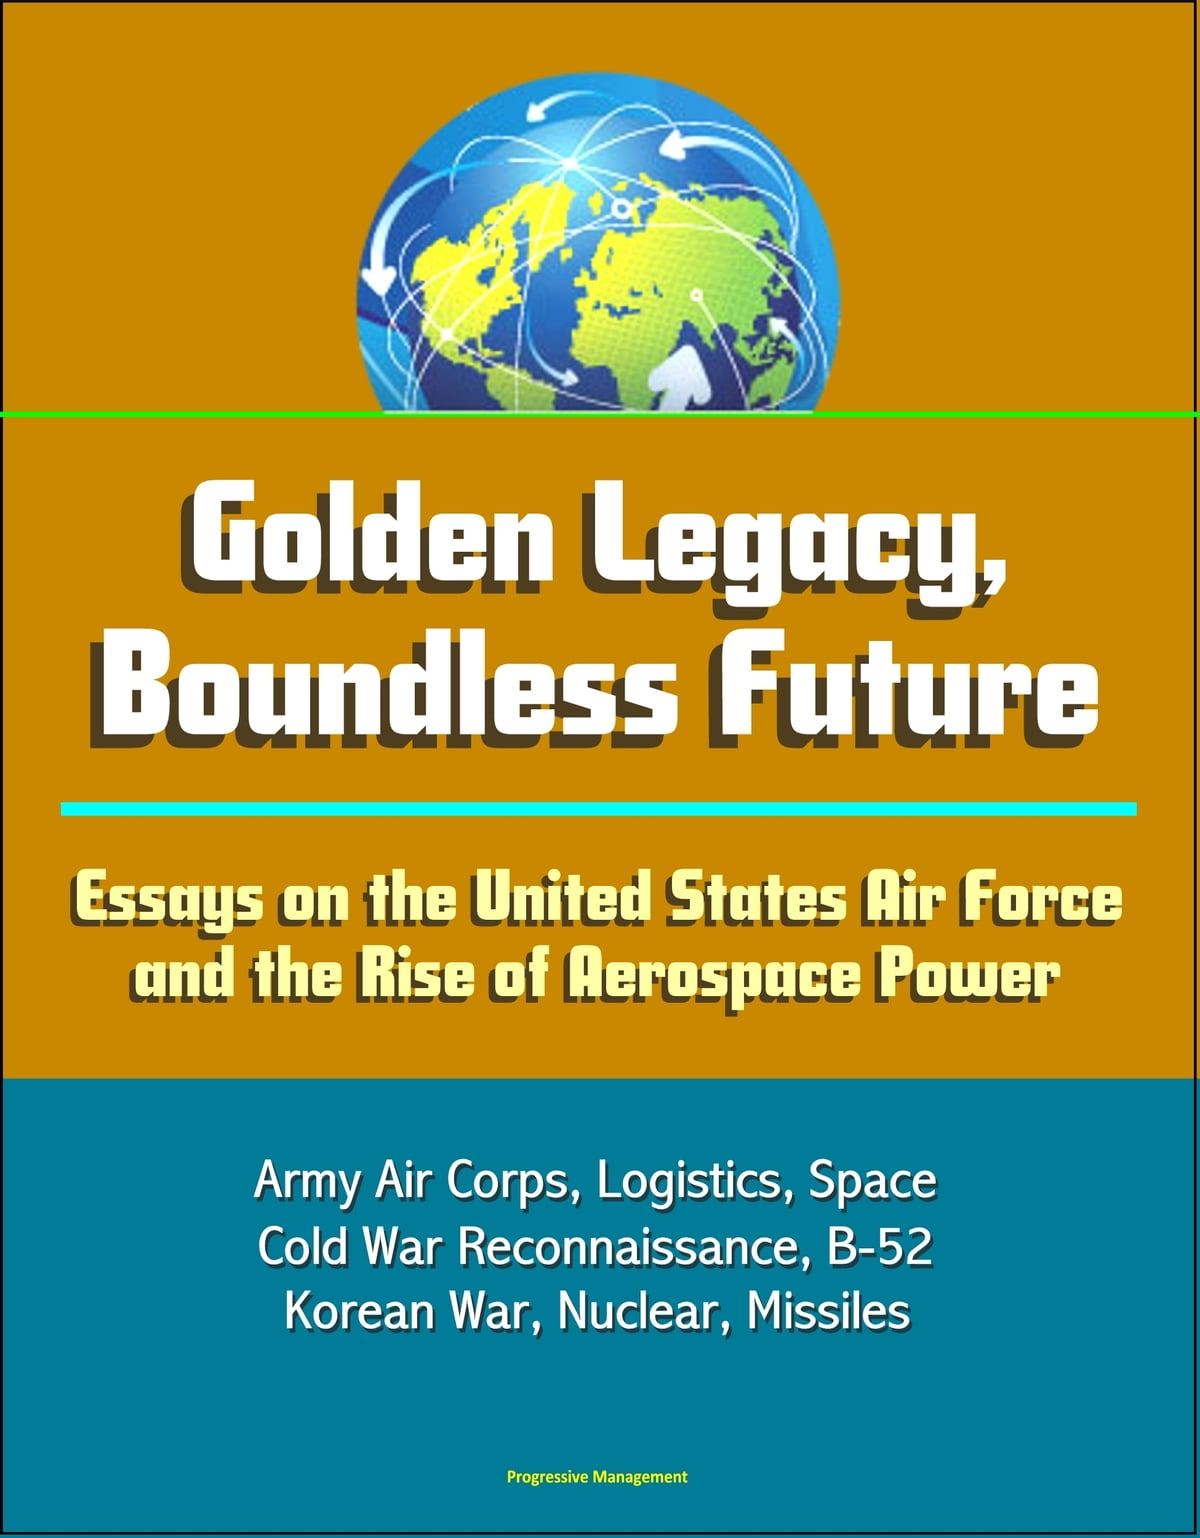 Topics For English Essays Golden Legacy Boundless Future Essays On The United States Air Force And  The Rise Of Aerospace Power  Army Air Corps Logistics Space Cold War  Business Law Essays also Thesis For A Persuasive Essay Golden Legacy Boundless Future Essays On The United States Air  Modern Science Essay